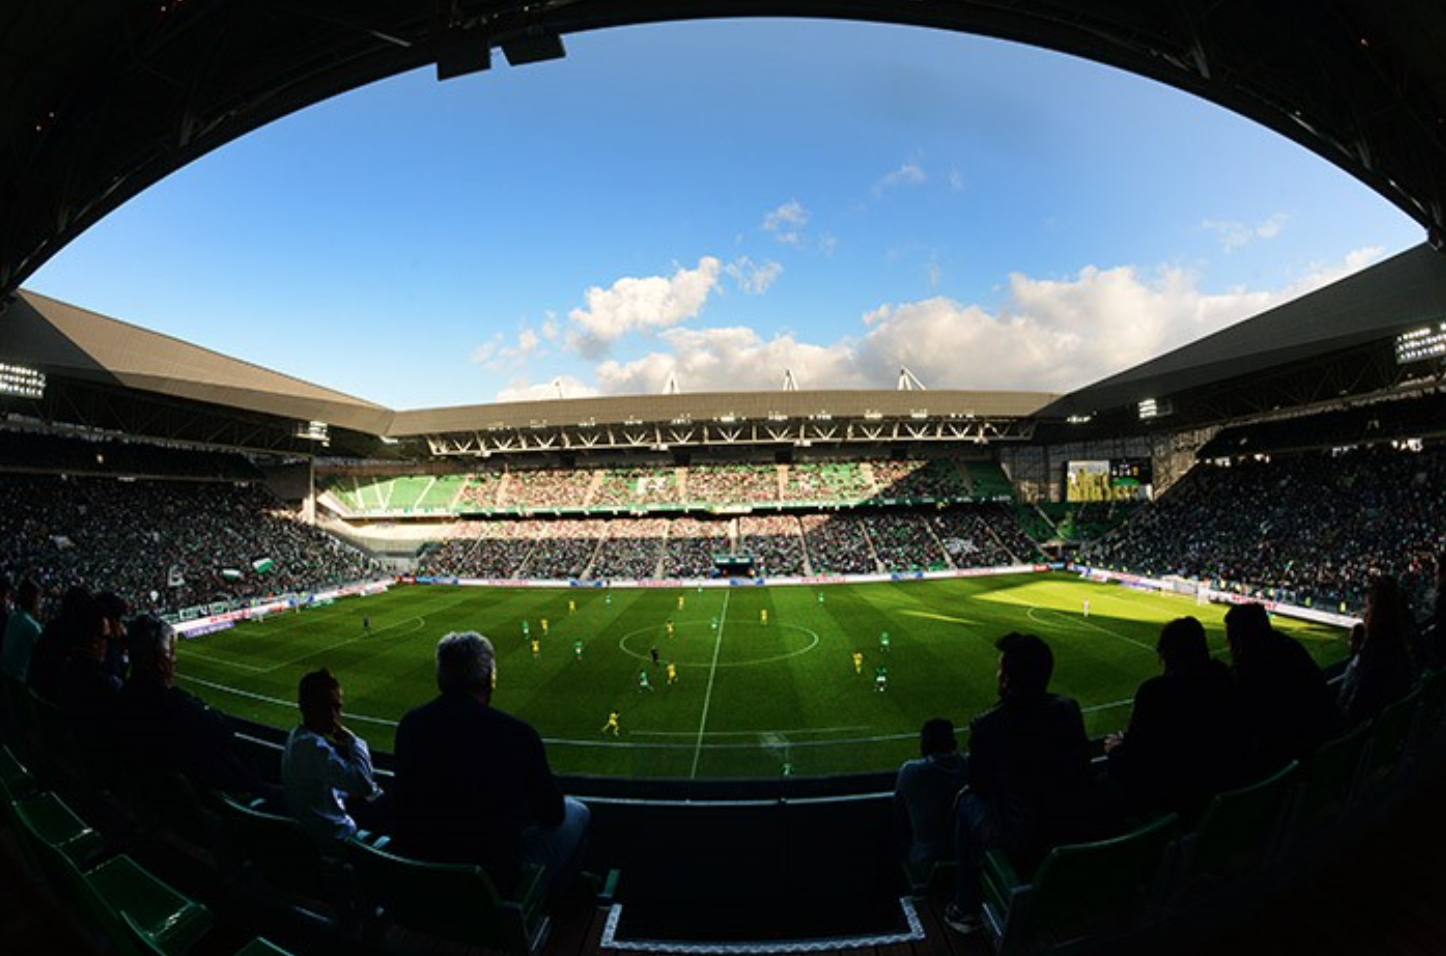 Stade Geoffroy Guichard is home to St Etienne and maintains a distinctly English feel